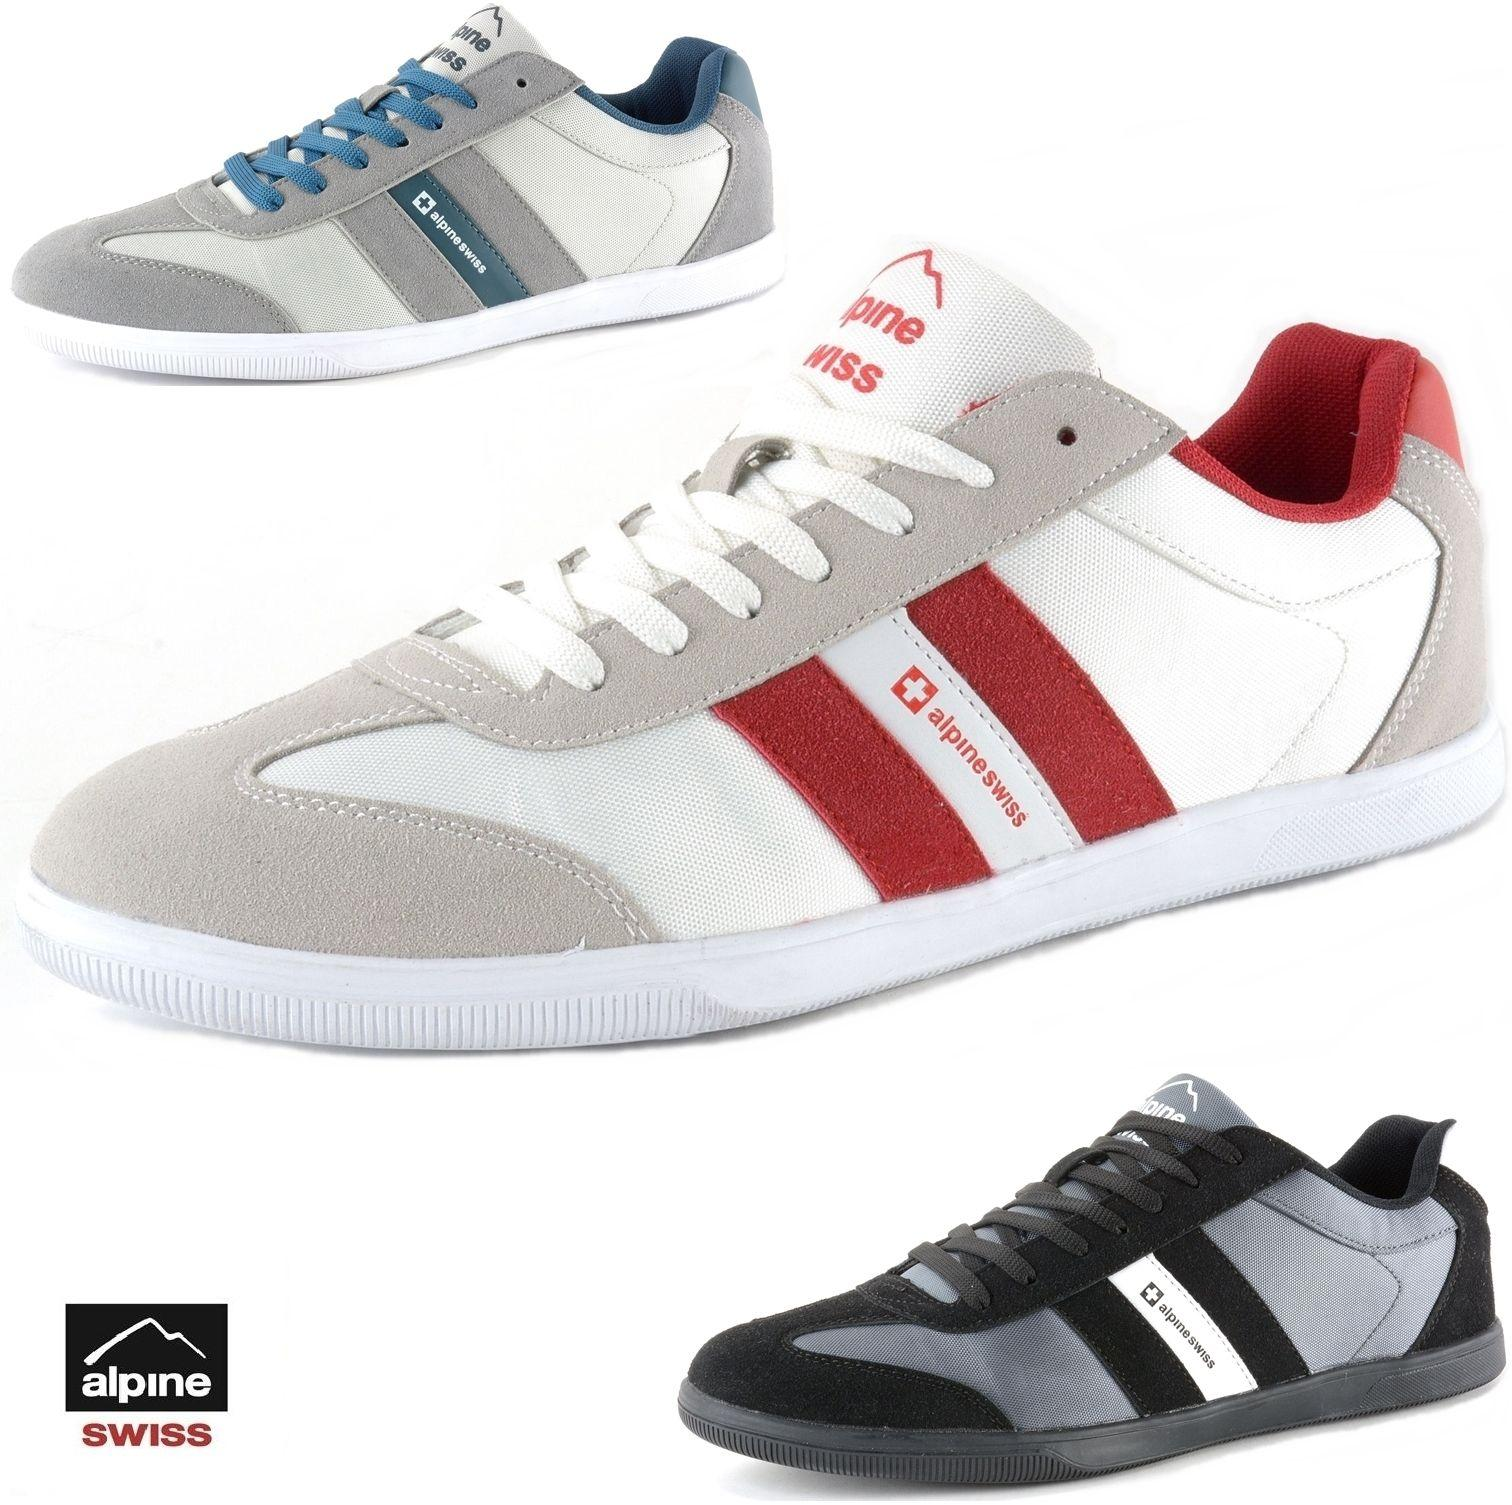 $27.99 Buy 1 Get 1 At 15% Off Alpine Swiss Haris Mens Retro Striped Athletic Shoes